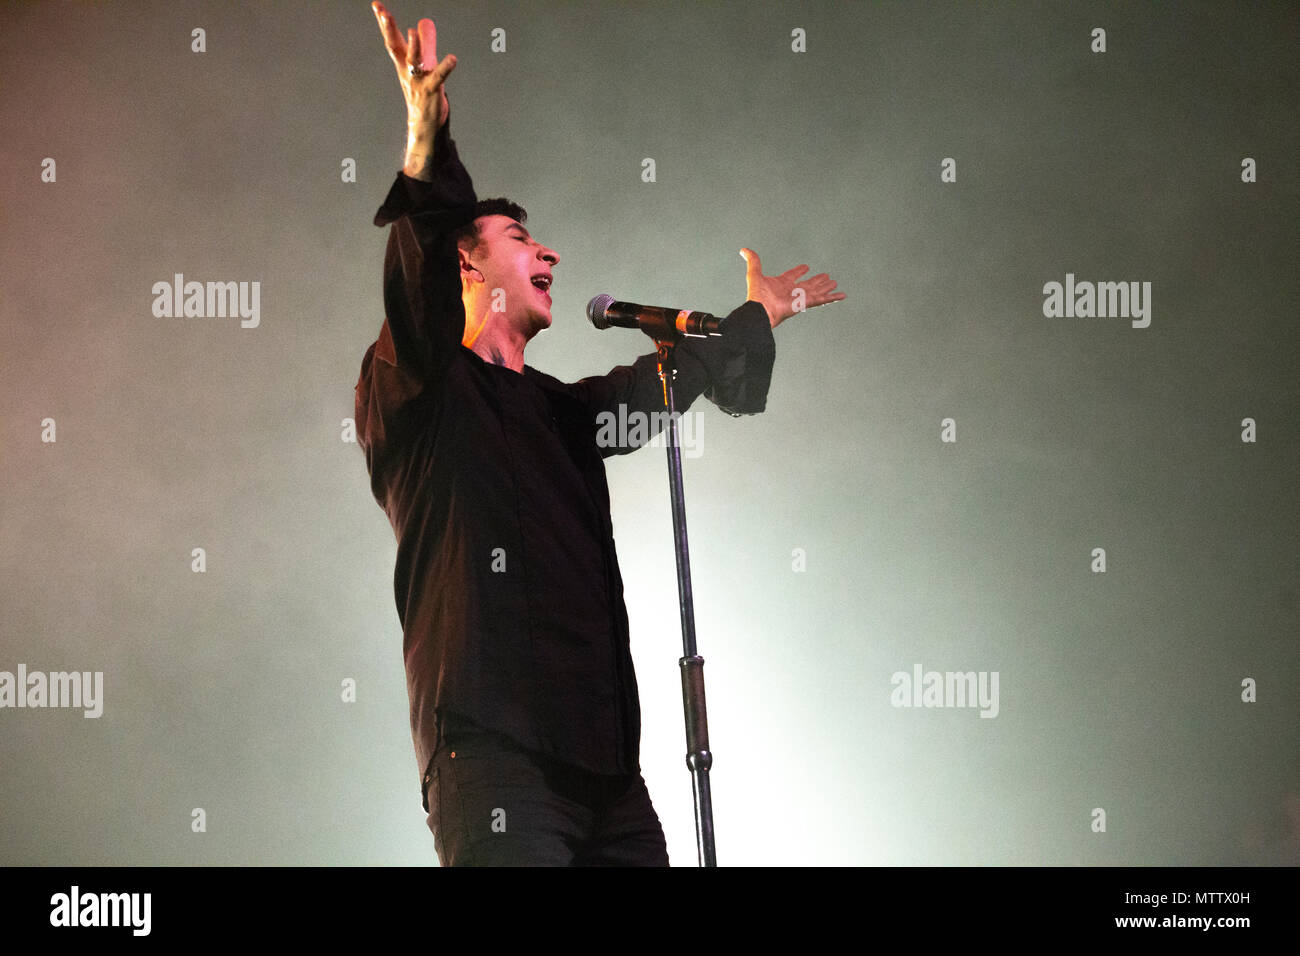 Marc Almond, In The Park Festival, Southend, Essex © Clarissa Debenham / Alamy - Stock Image